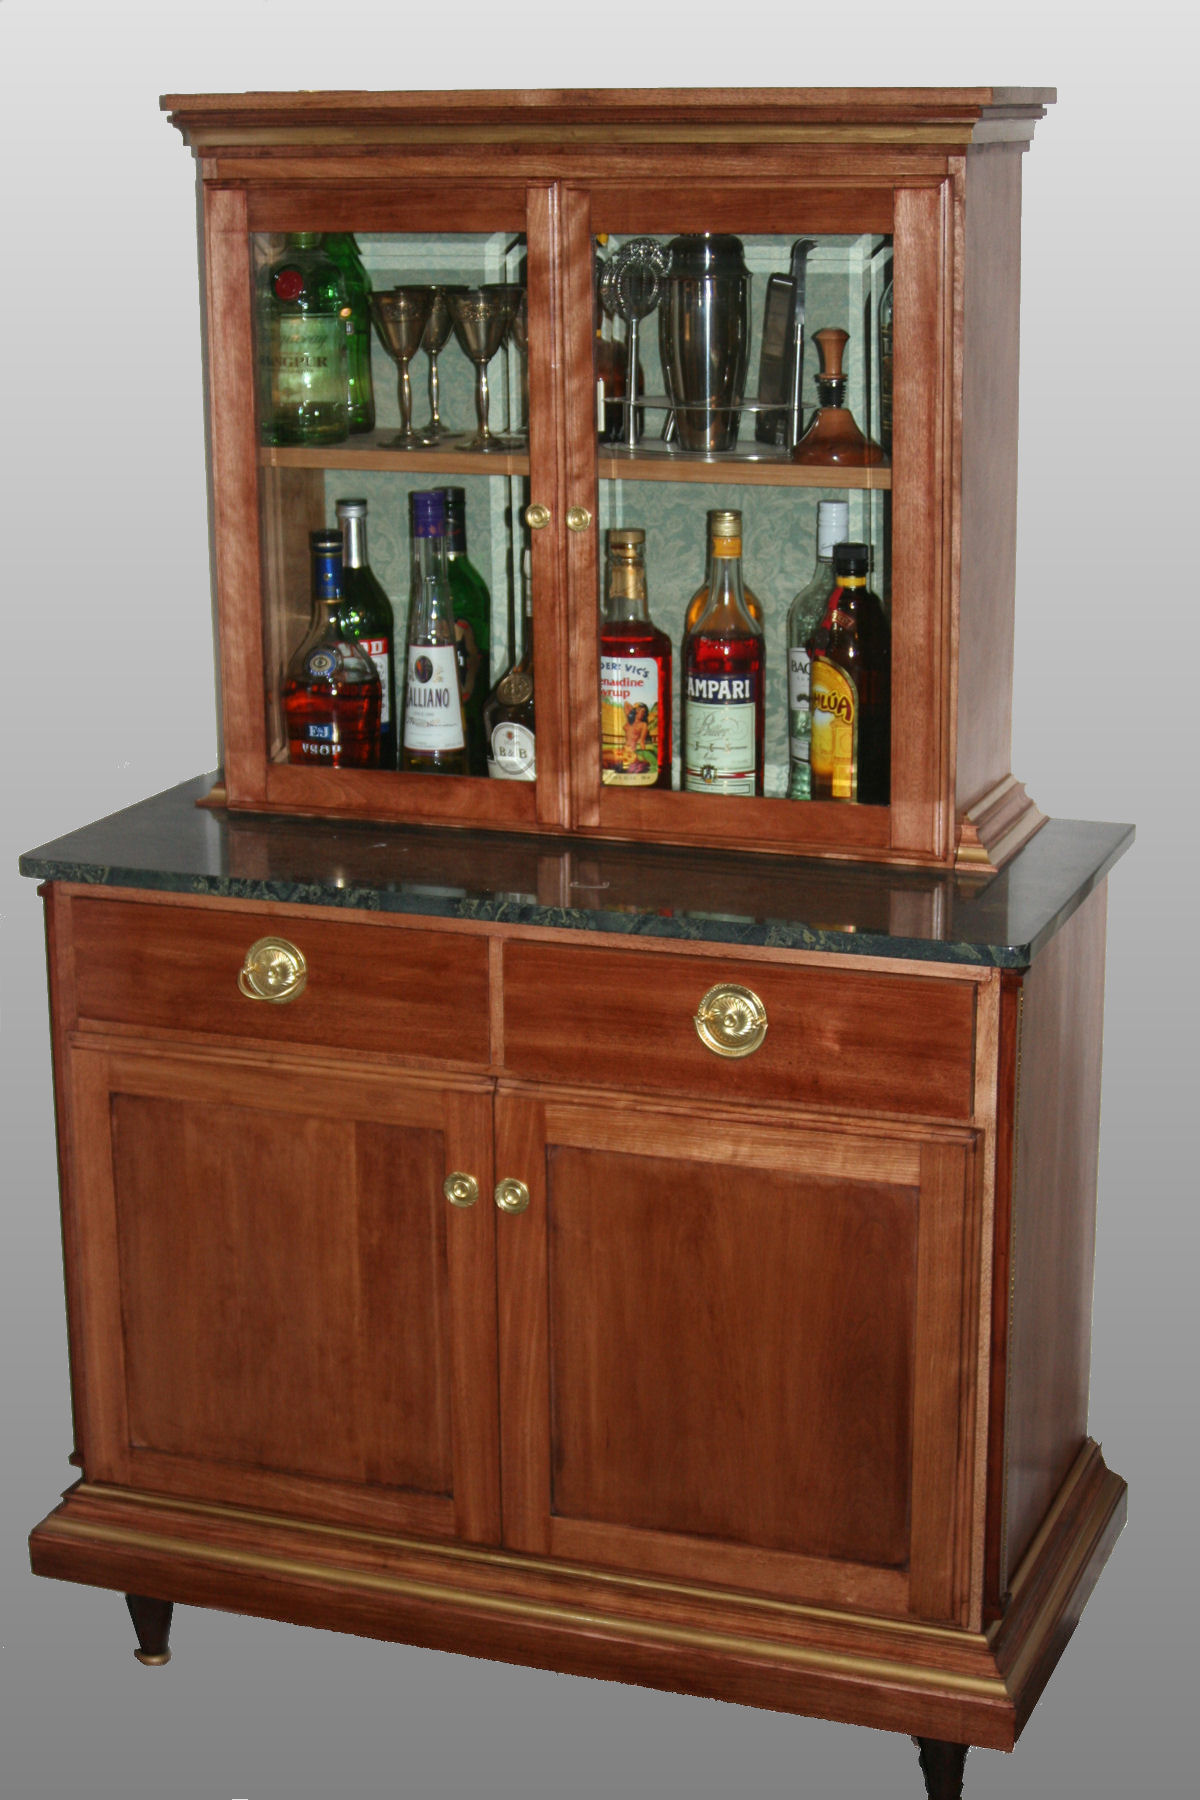 appealing hutch vintage with for home ideas bar source luxury wooden furniture liquor cabinet antique mid and century